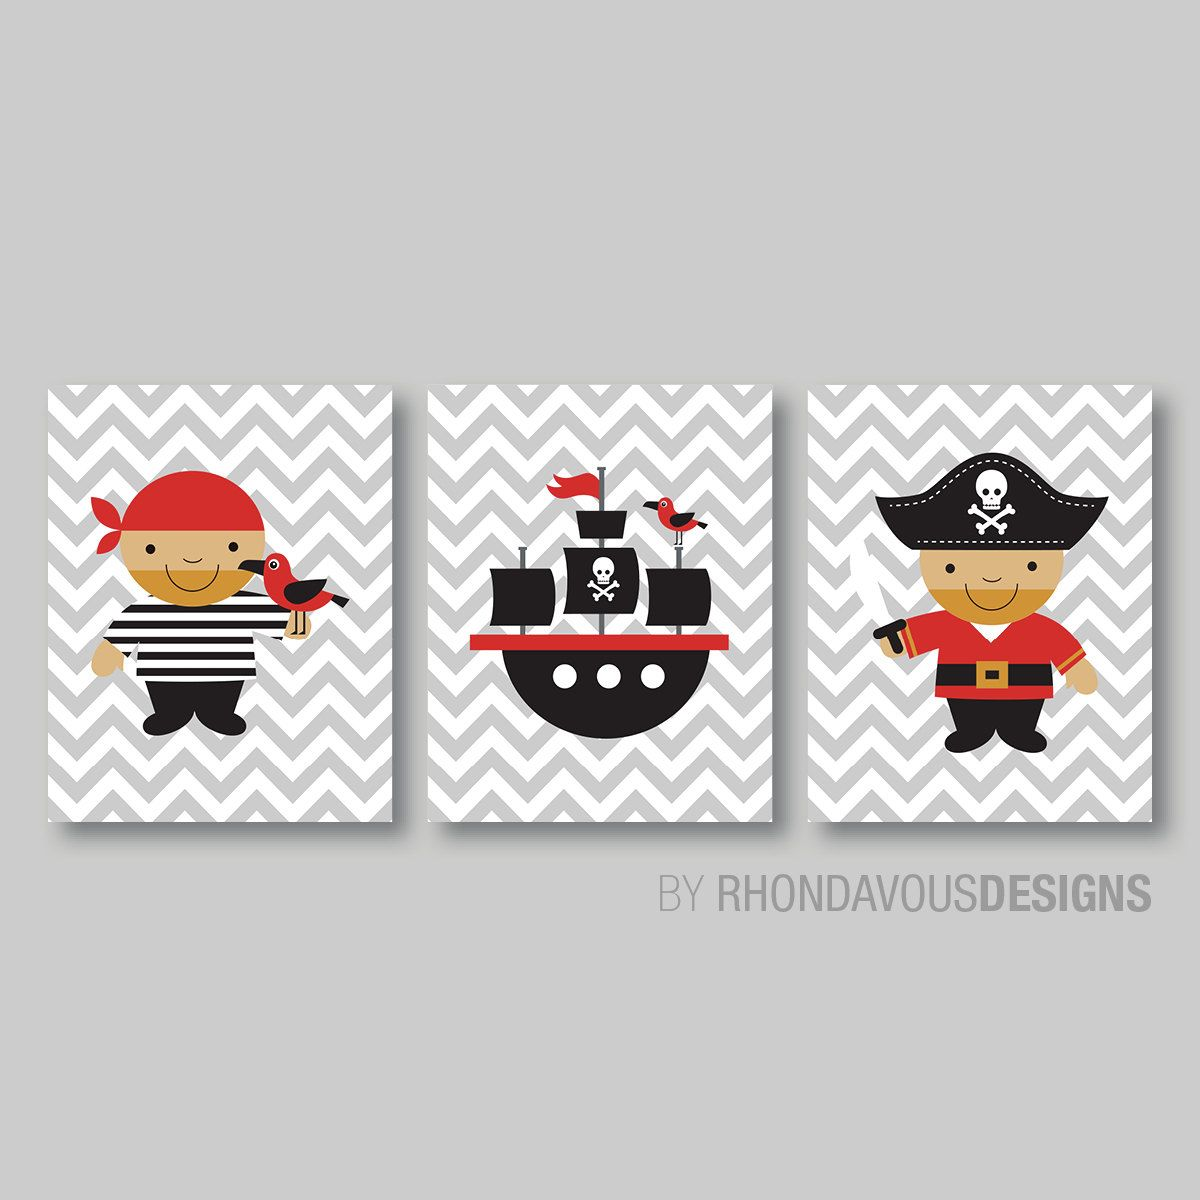 Pirate bathroom decor for kids - Kid Bathroom Art Child Bathroom Art Pirate Bathroom Art Pirate Bedroom Art Bathroom Rules Chevron Gray Black Red Ns 380